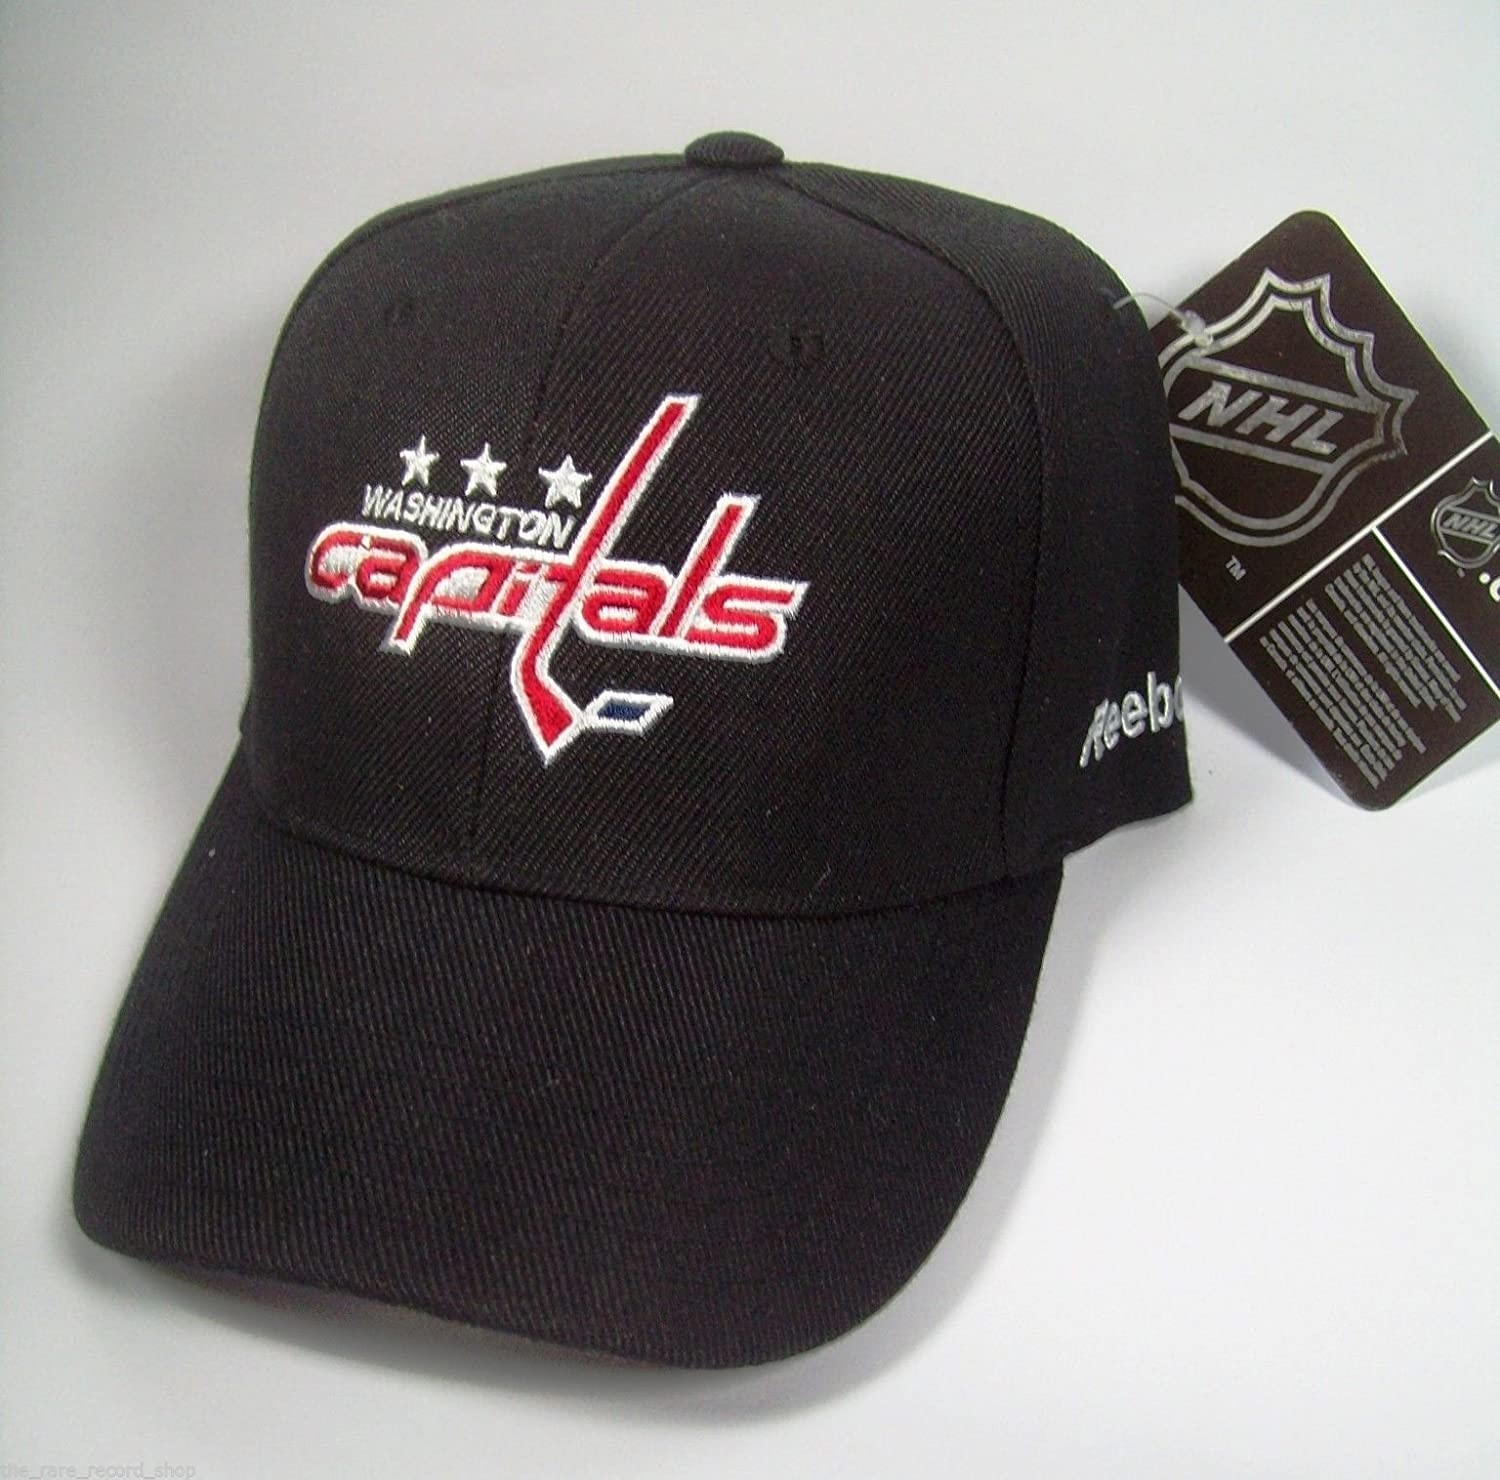 Reebok Black Washington Capitals NHL Hockey Basic Logo Adjustable Cap Hat eric fehr washington capitals nhl action photo size 8 x 10